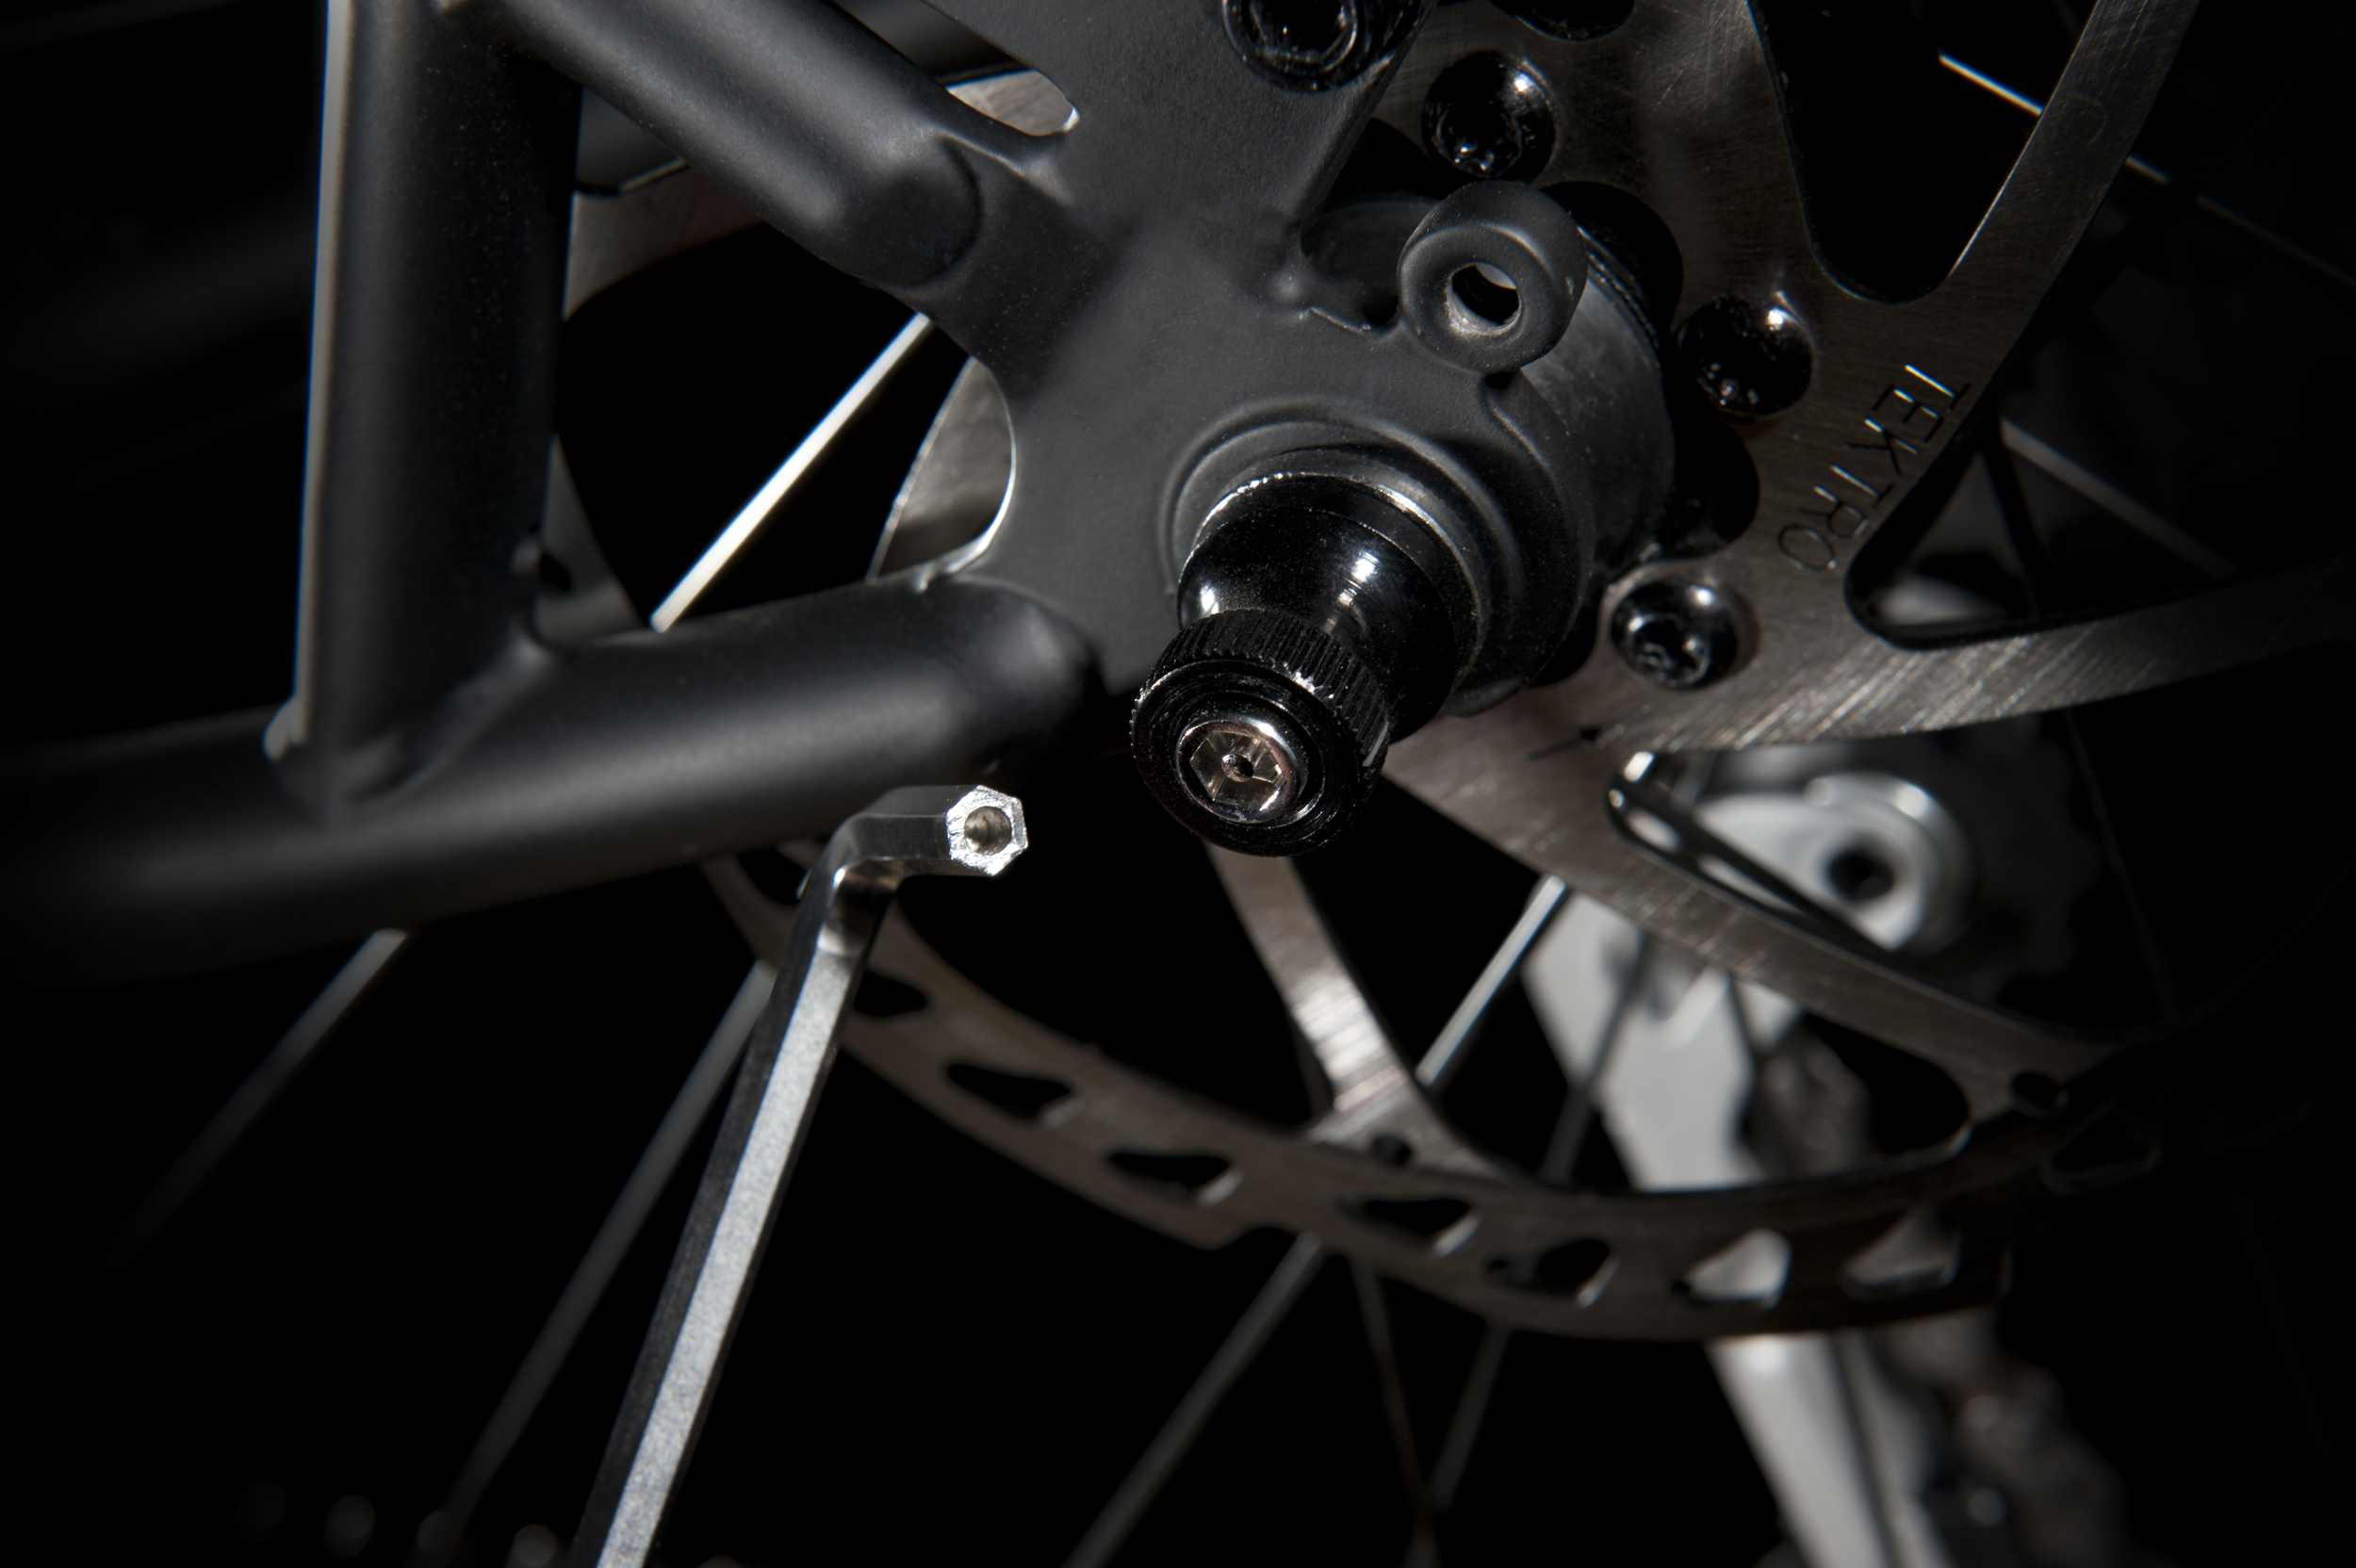 Security Skewers come as standard on Marin Hybrids